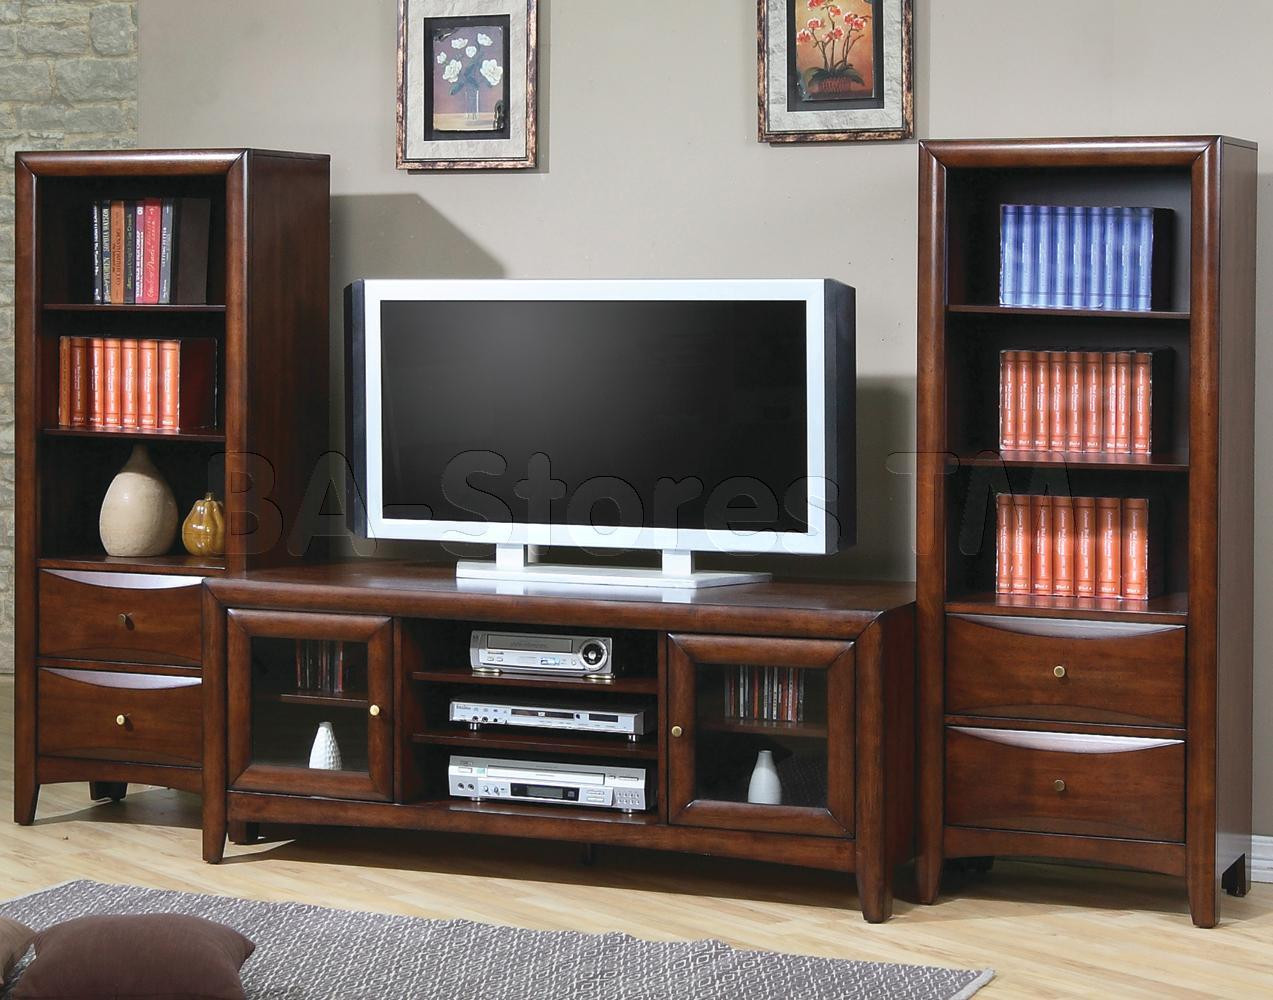 Best ideas about Tv Stand Ideas For Living Room . Save or Pin Tv stand ideas collection living room tv stand designs Now.